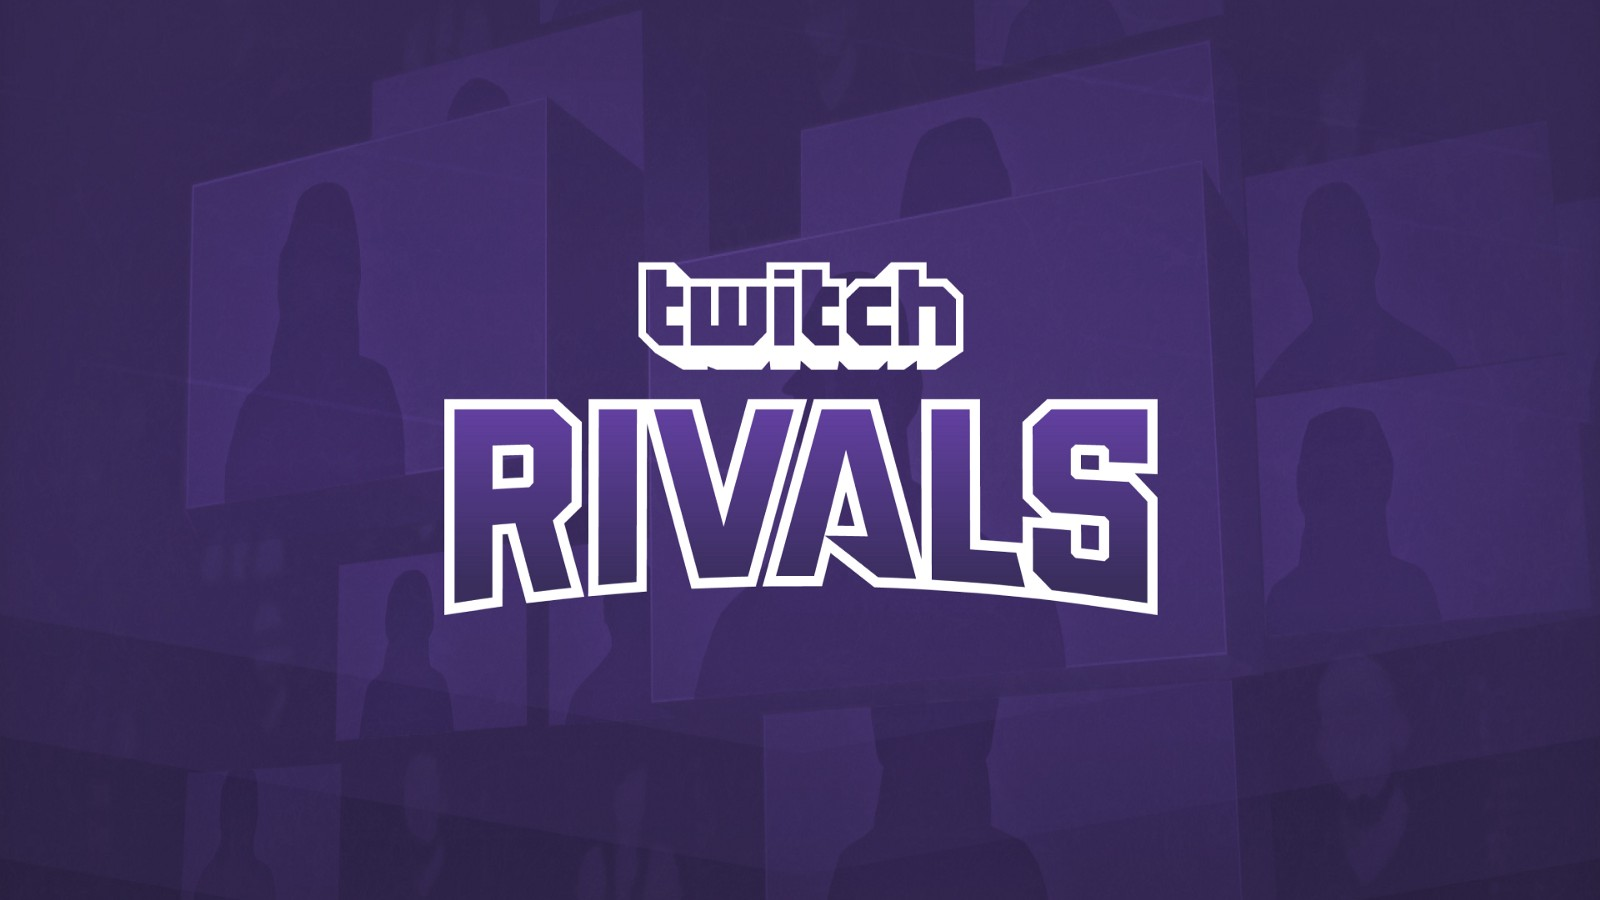 The News From Twitchcon Europe